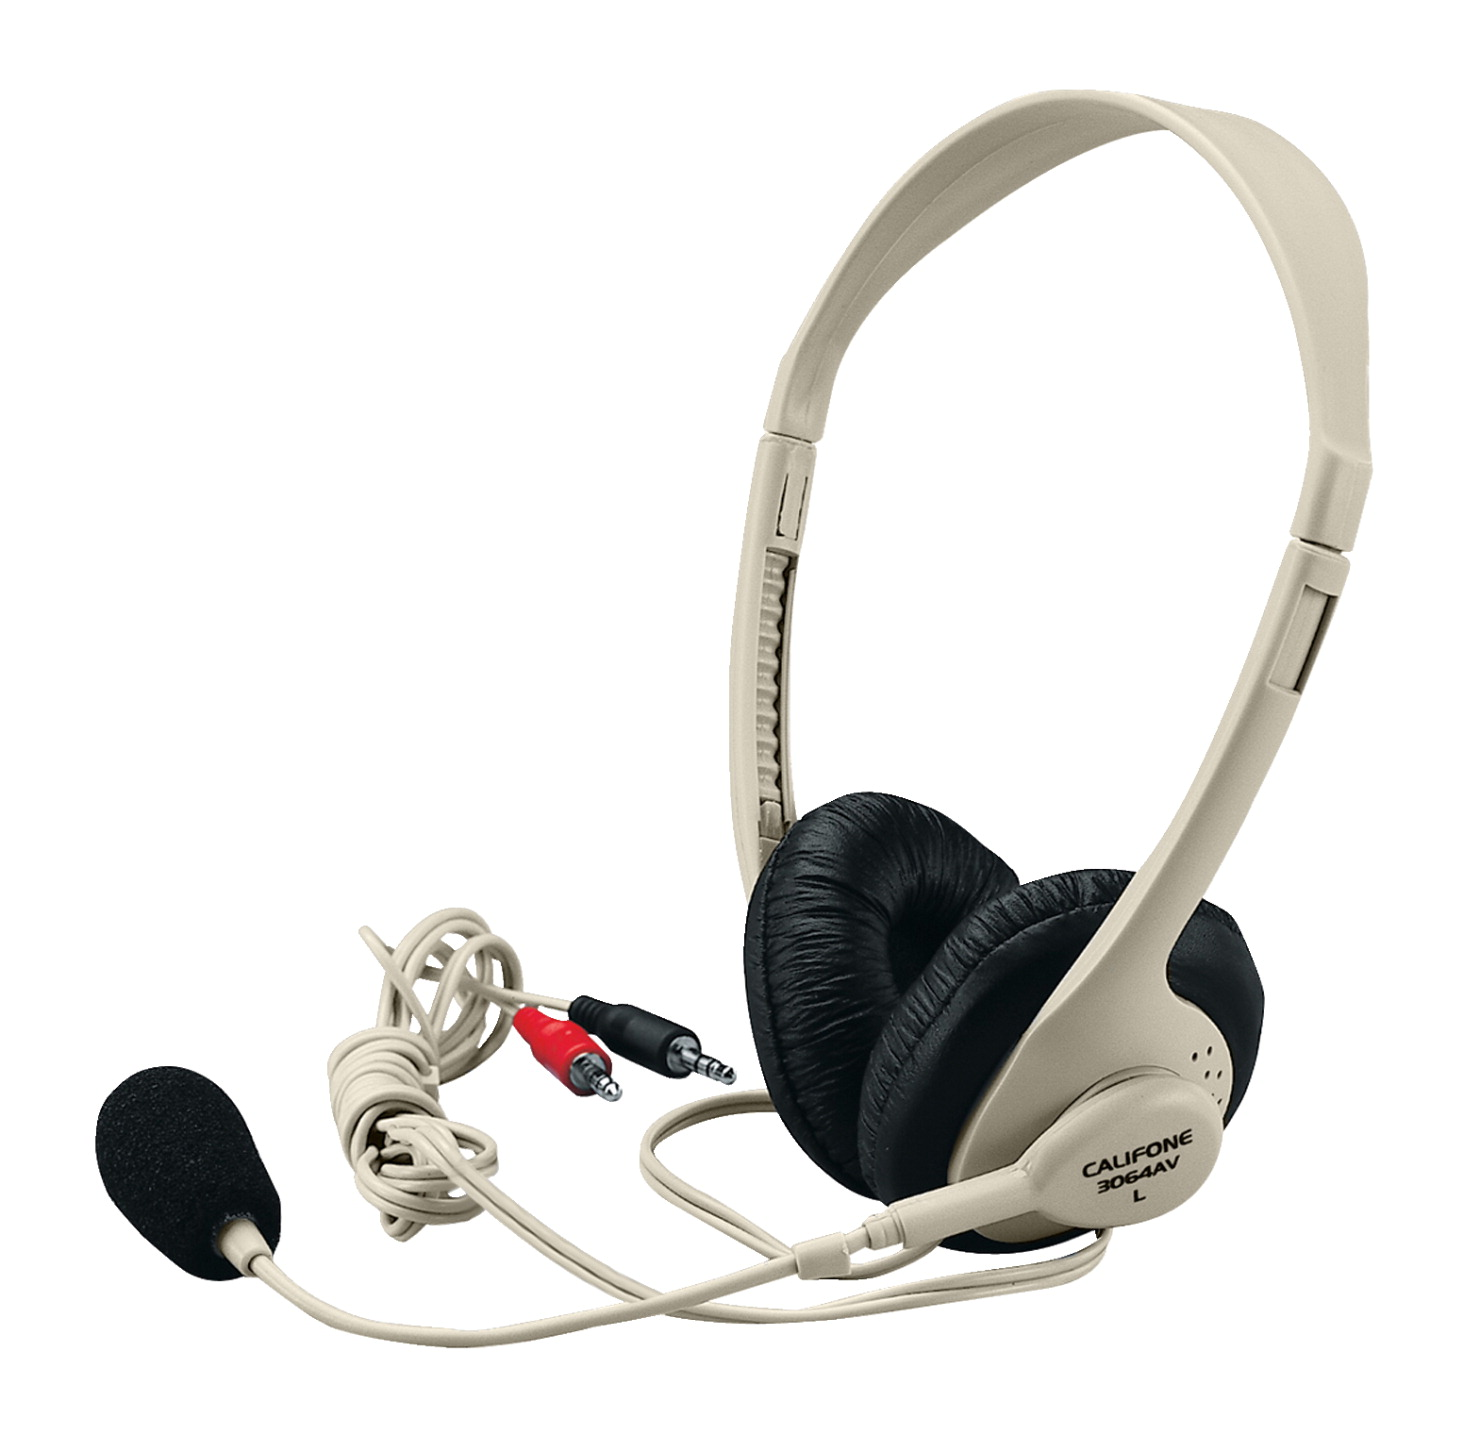 Califone 3064AV Multimedia Stereo Headset with Microphone, Dual 3.5mm plugs, Beige